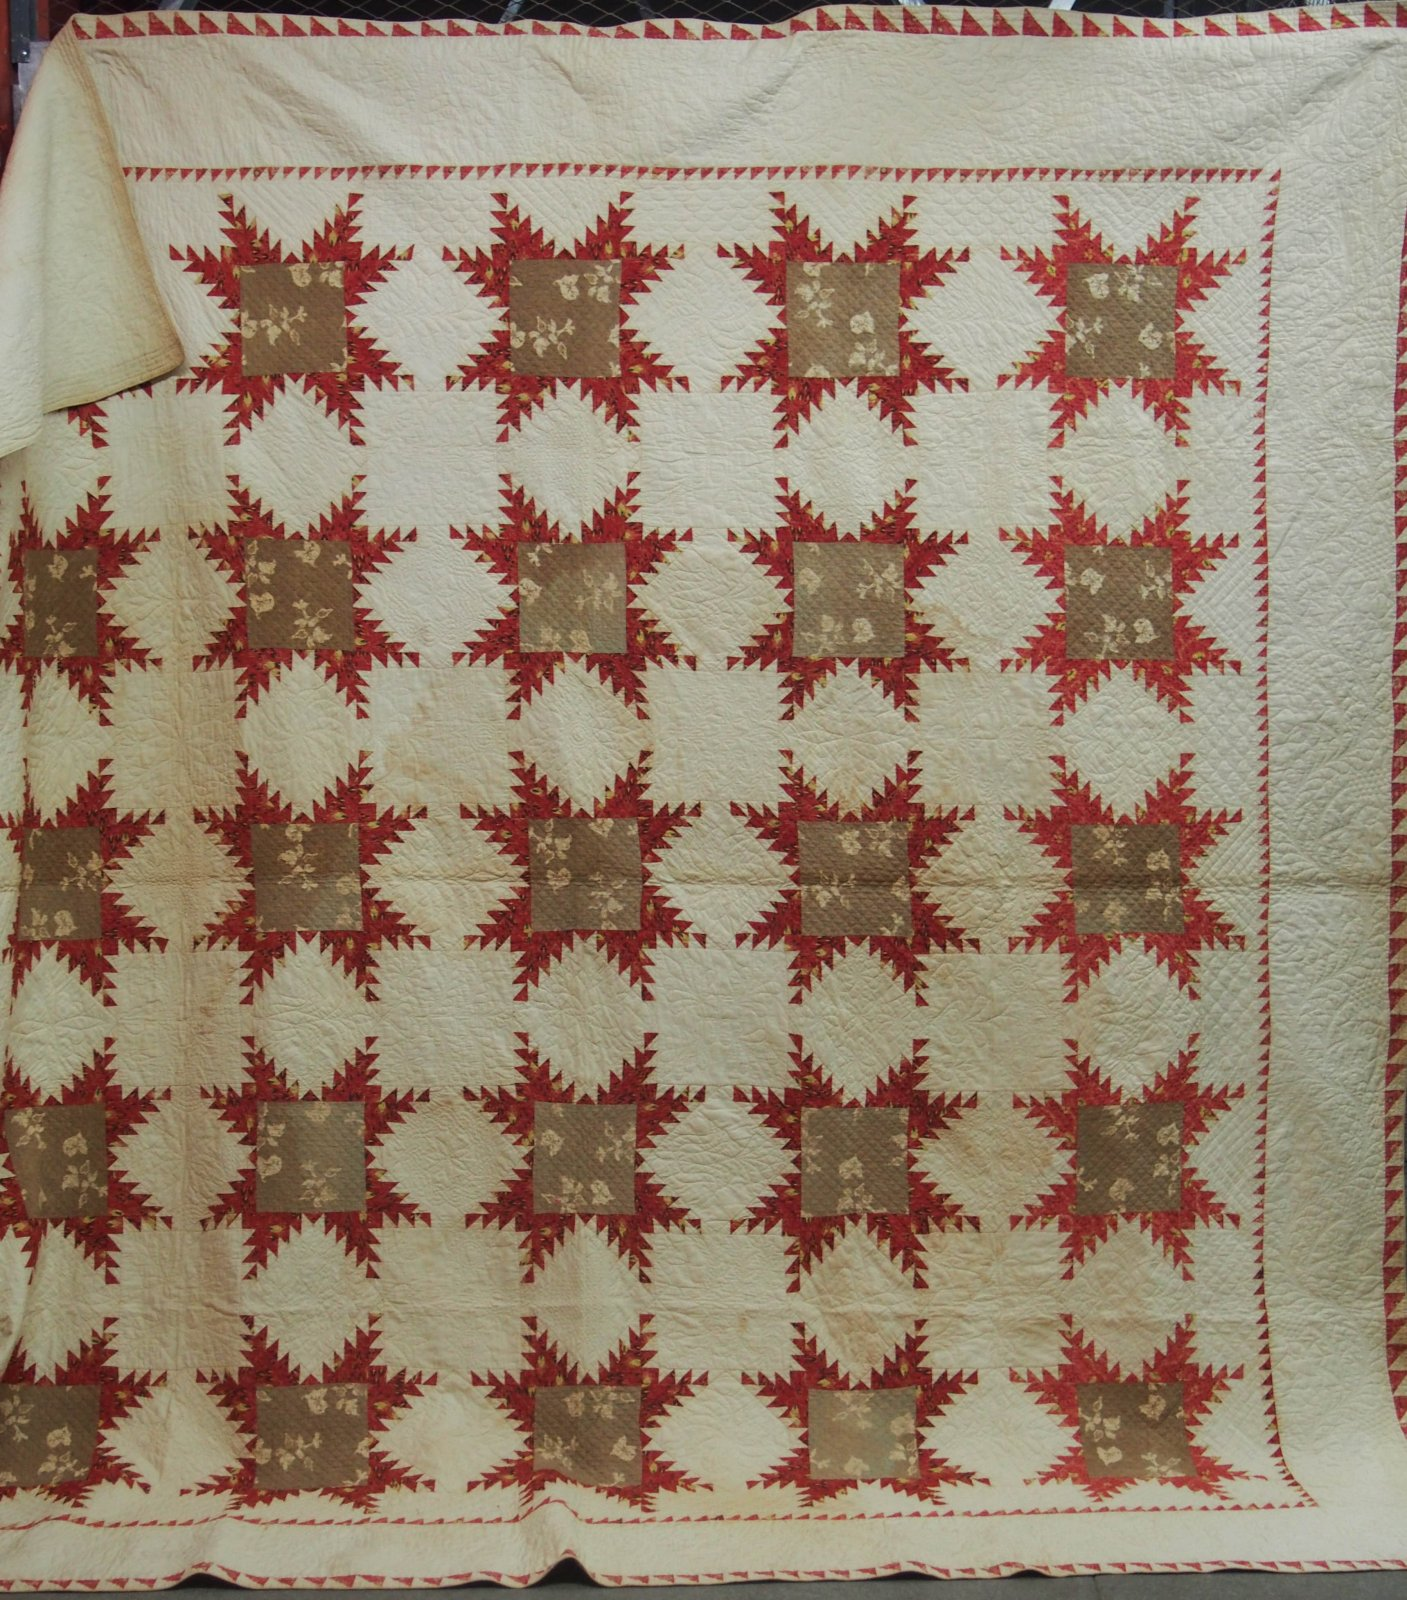 FEATHERED STARS red and camel WITH SAWTOOTH INNER BORDER ANTIQUE QUILT